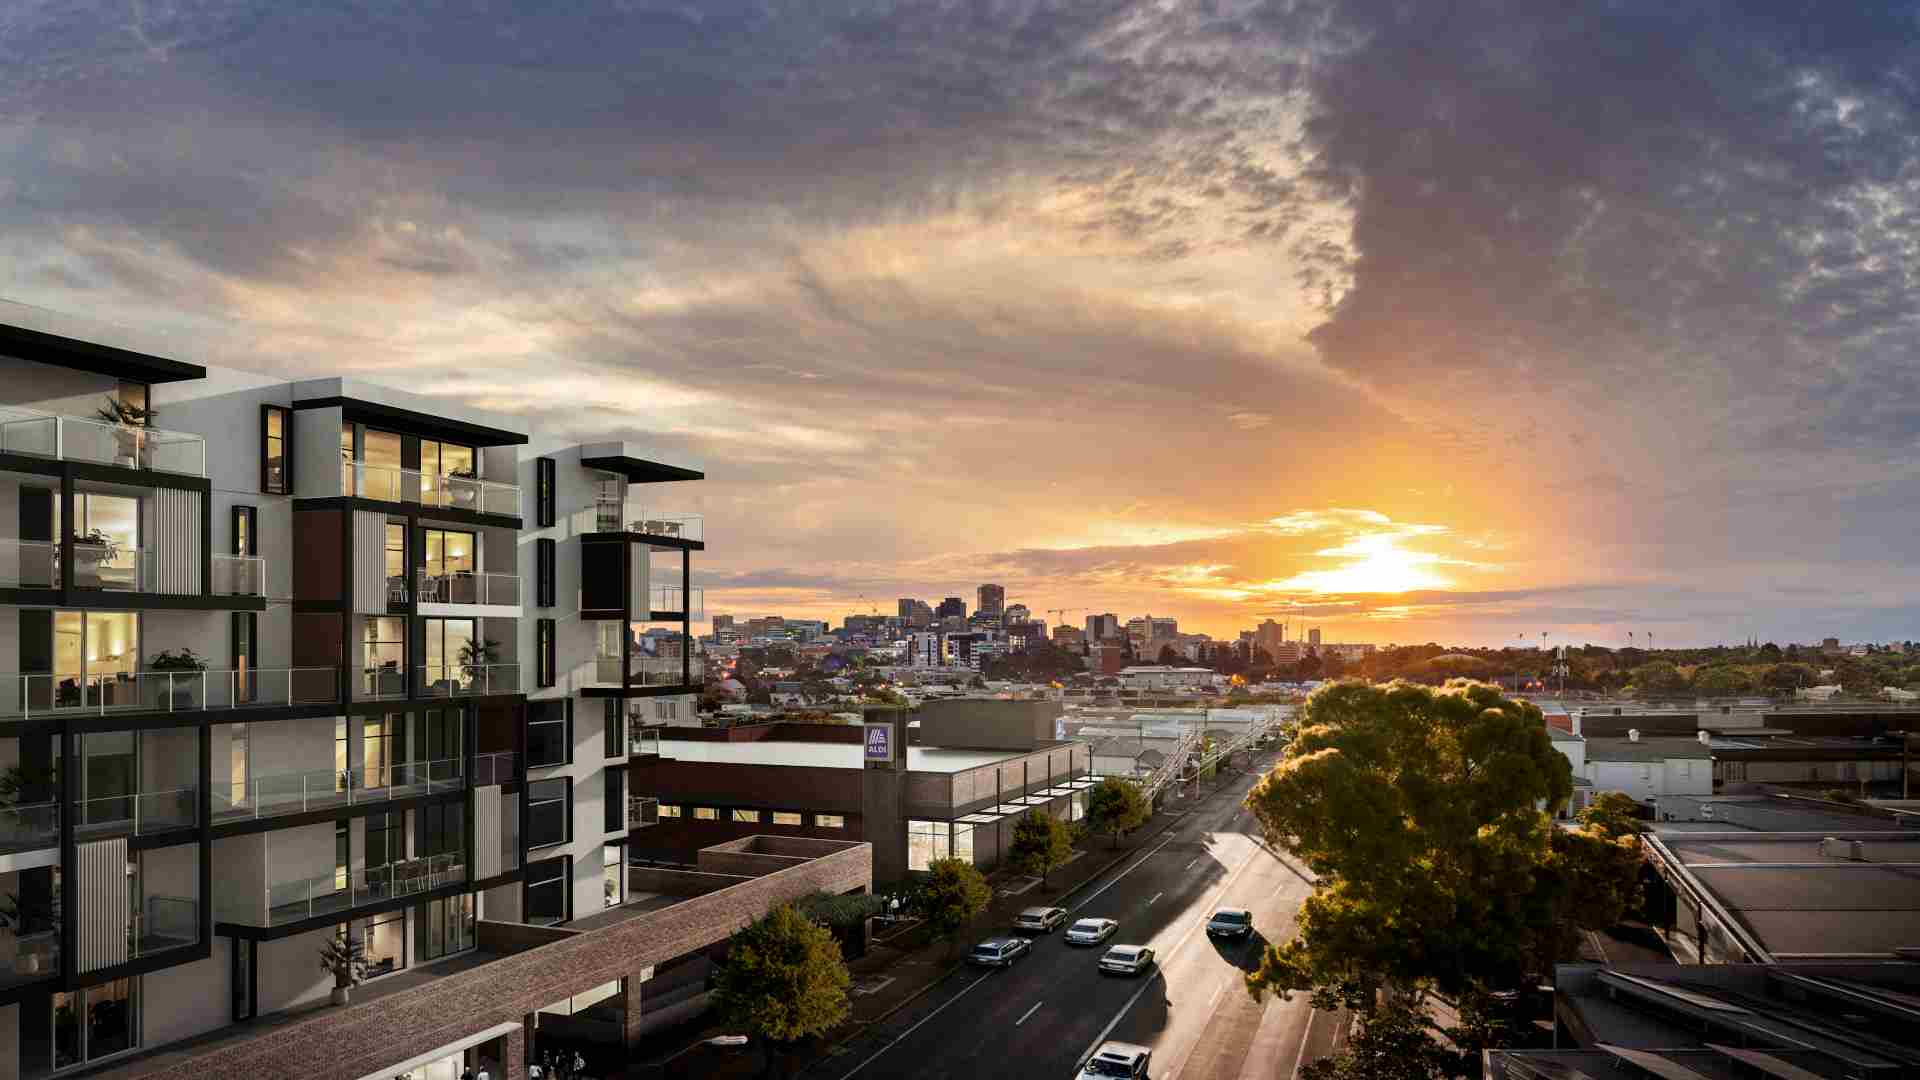 Buildtec sees bright future in Adelaide property